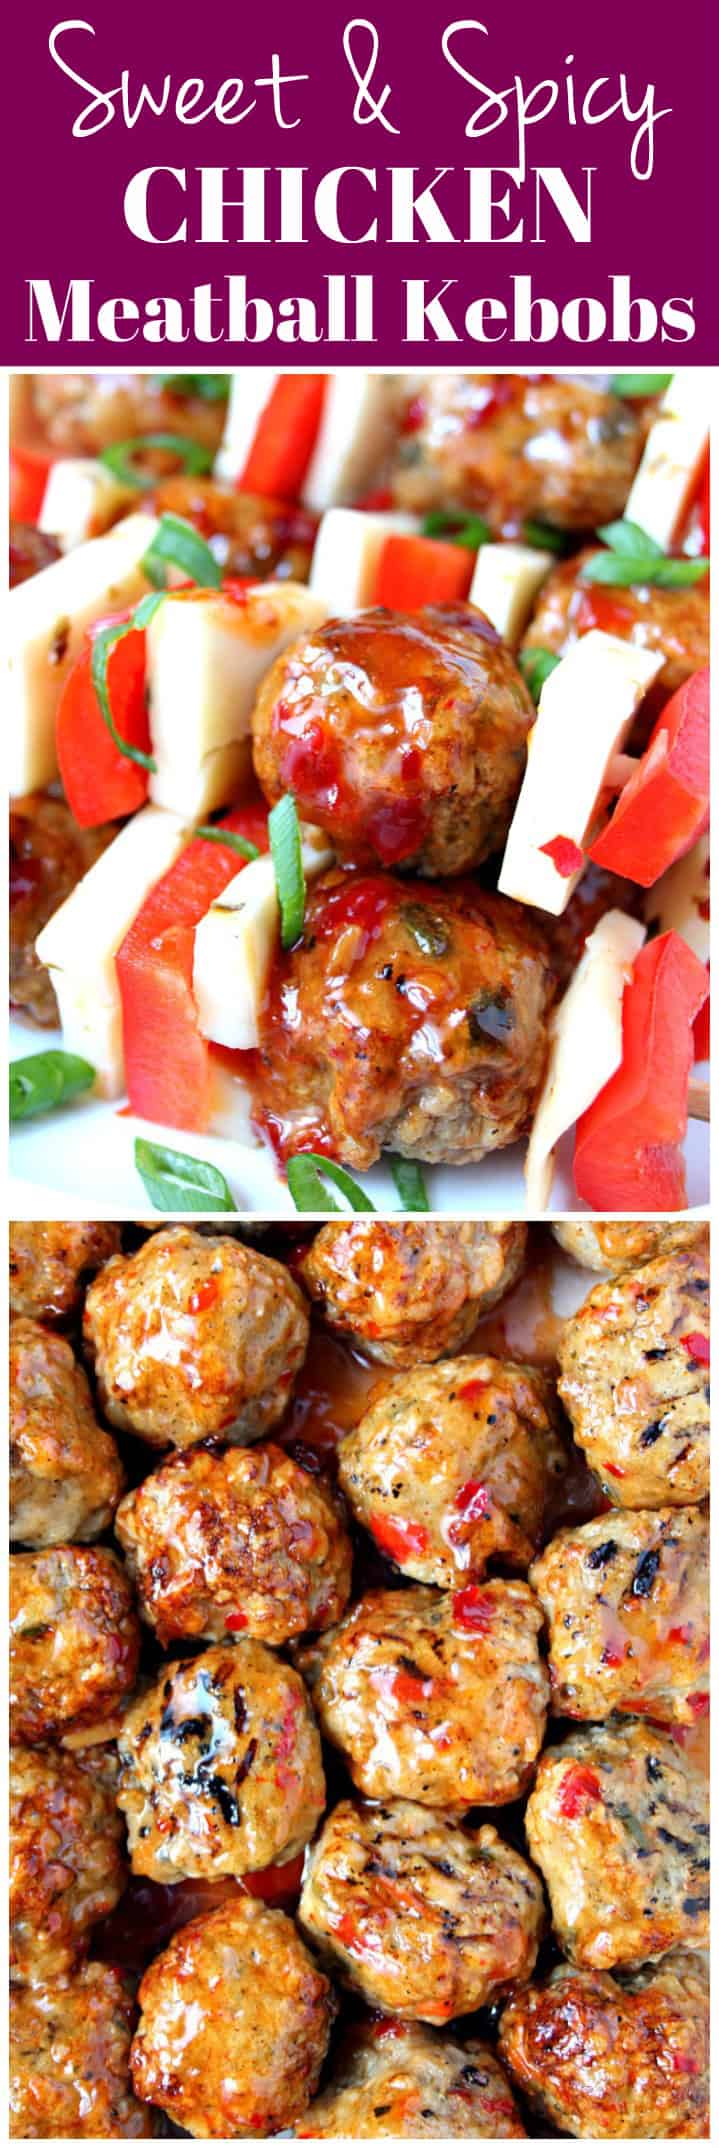 meatball kebobs long 1 Sweet and Spicy Chicken Meatball Kebobs Recipes